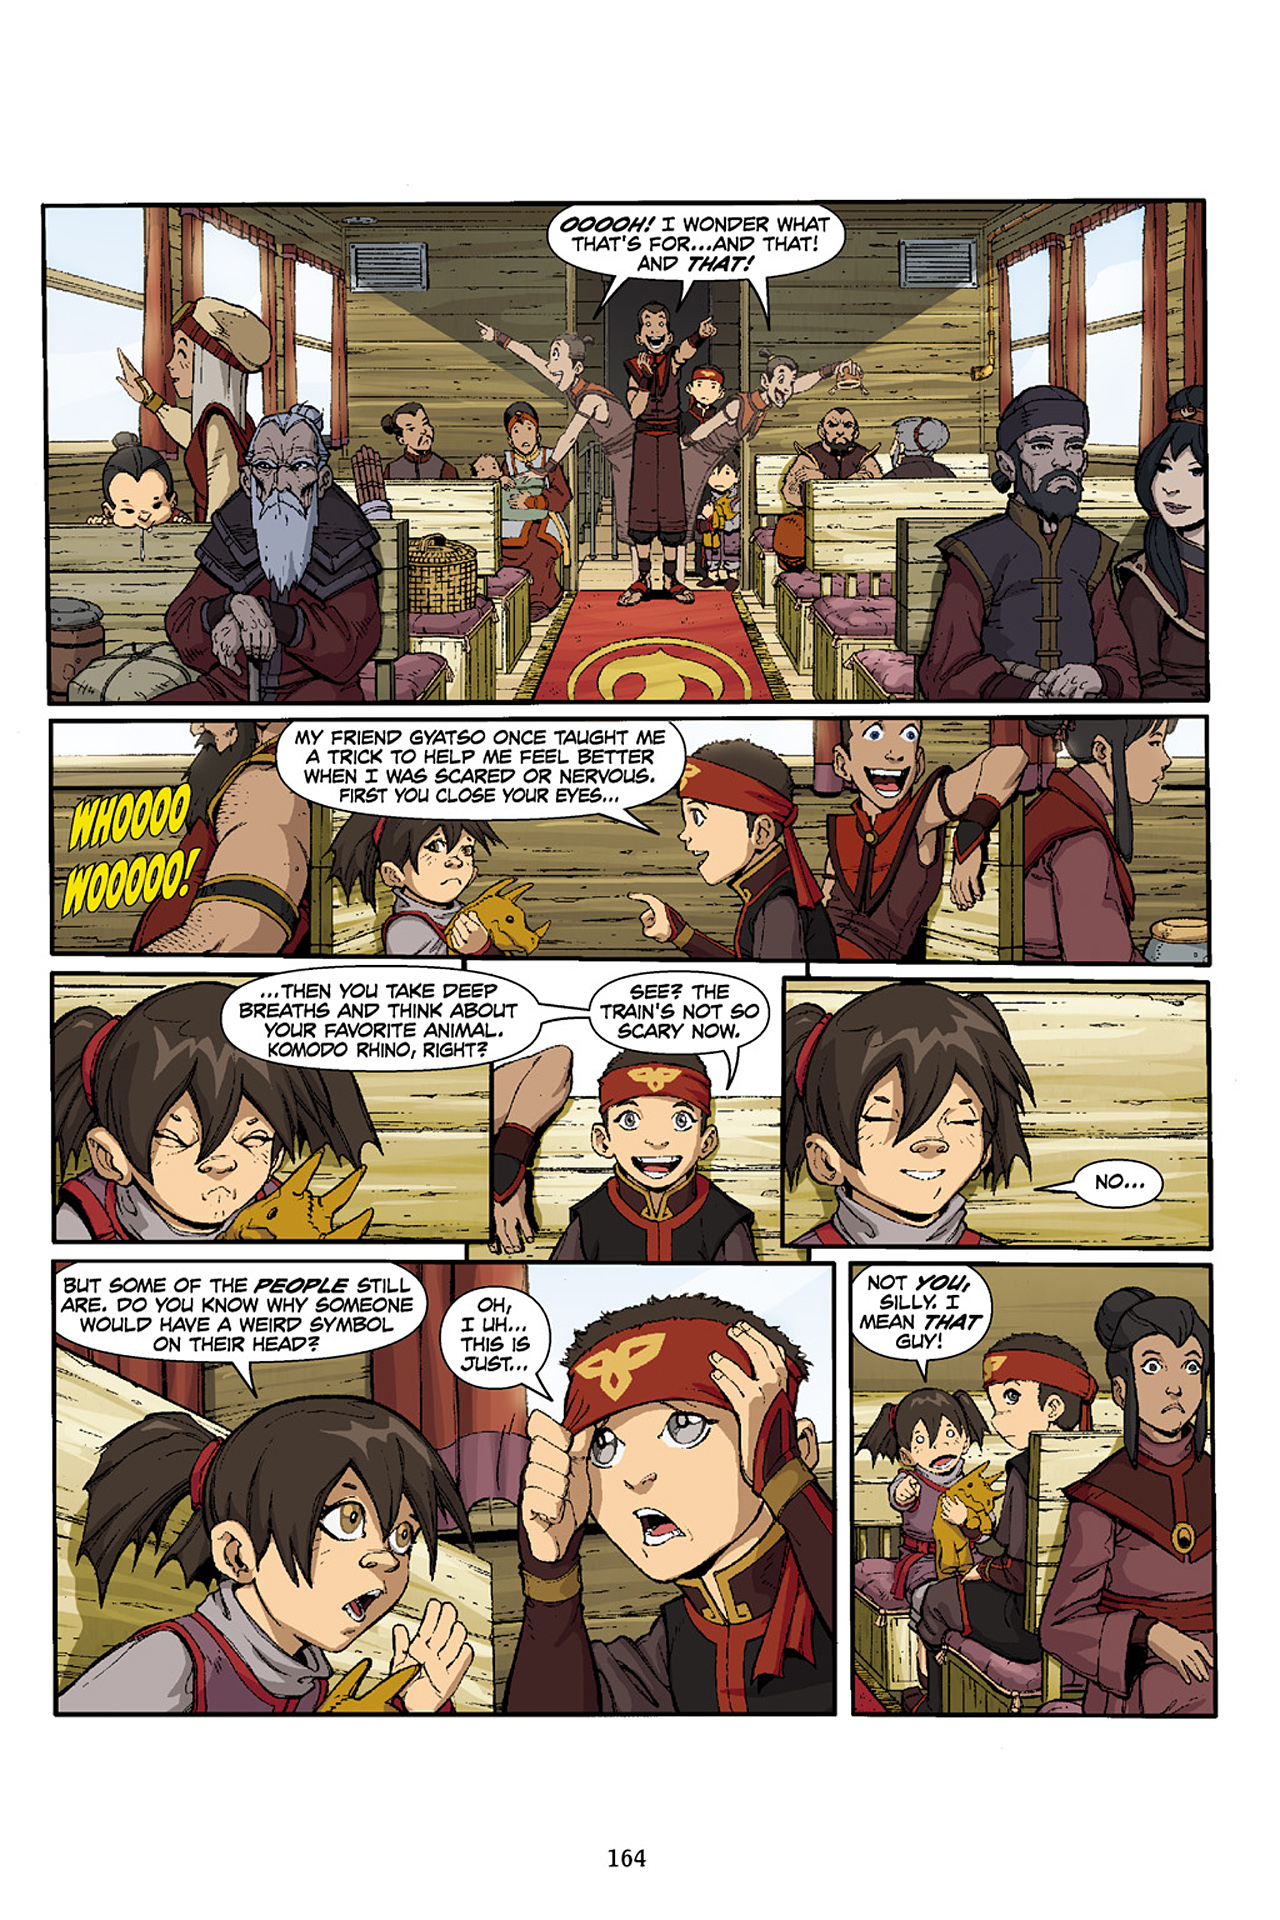 Nickelodeon Avatar: The Last Airbender - The Lost Adventures chap full pic 165